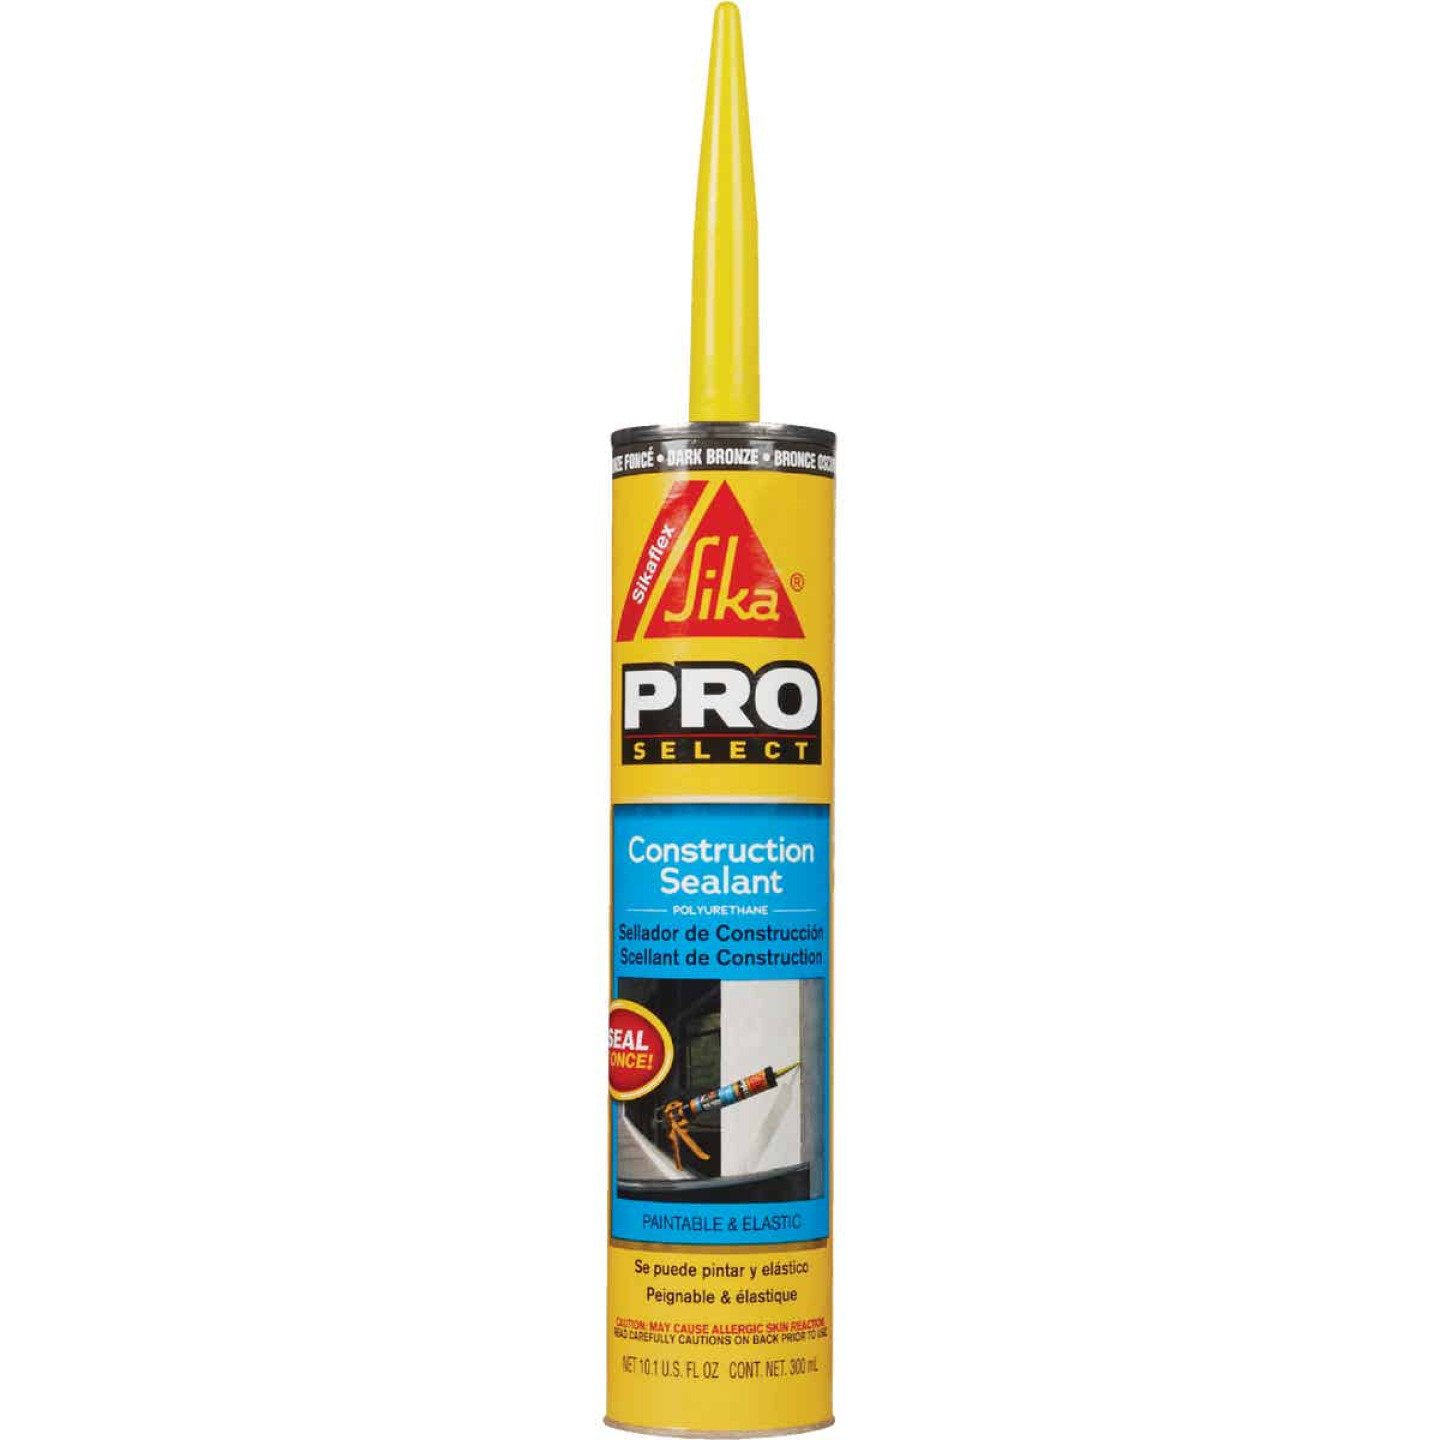 Sikaflex Sika 10.1 Oz. Pro Select Construction Polyurethane Sealant, Dark Bronze Image 1